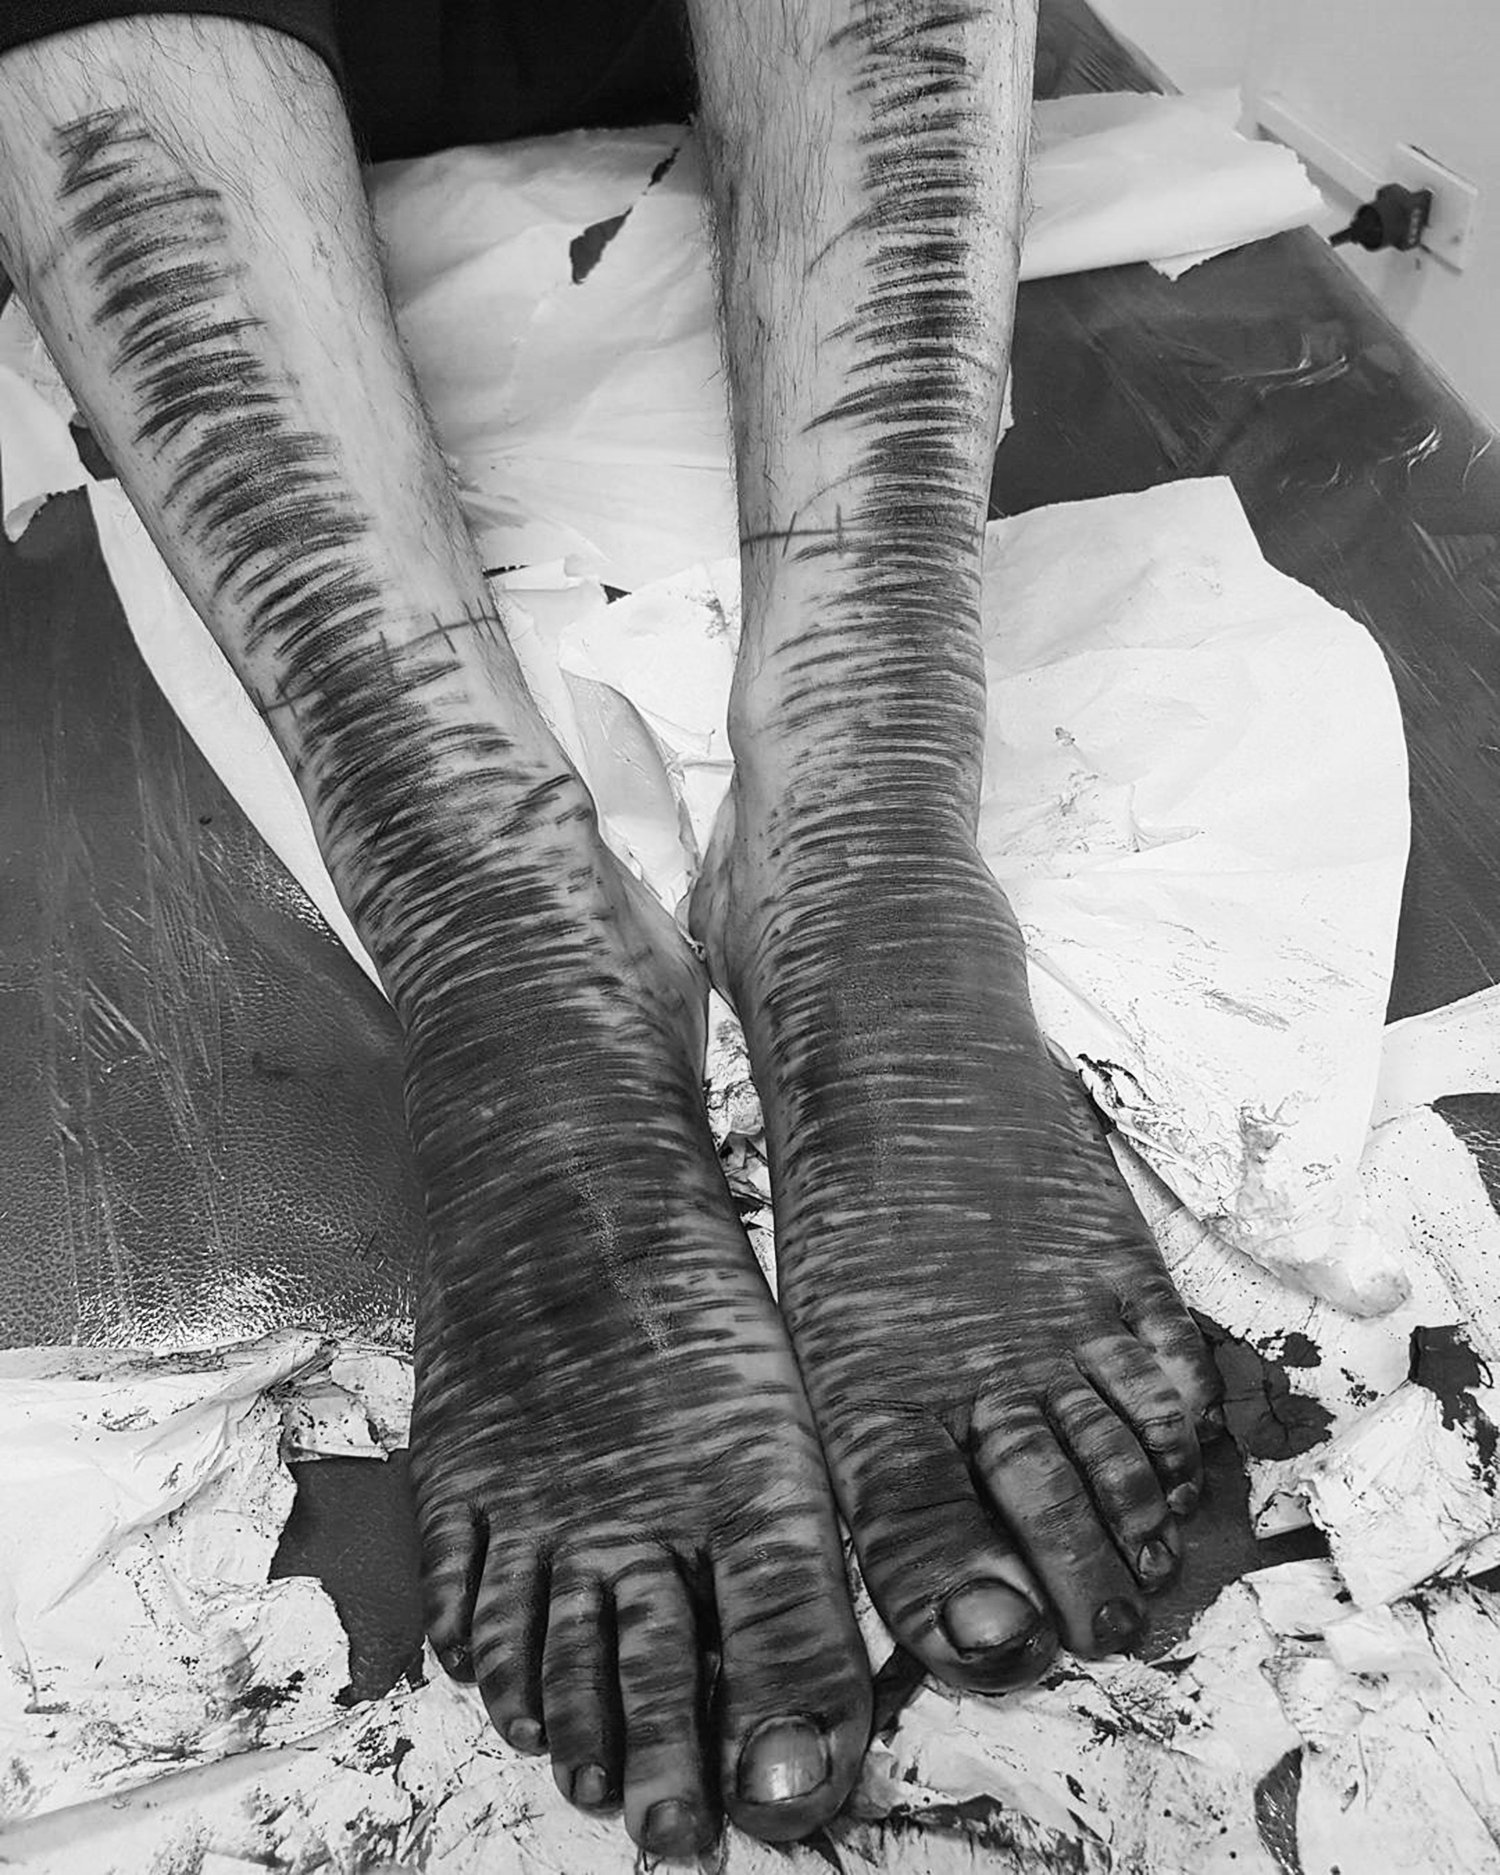 tattooed feet, blacking